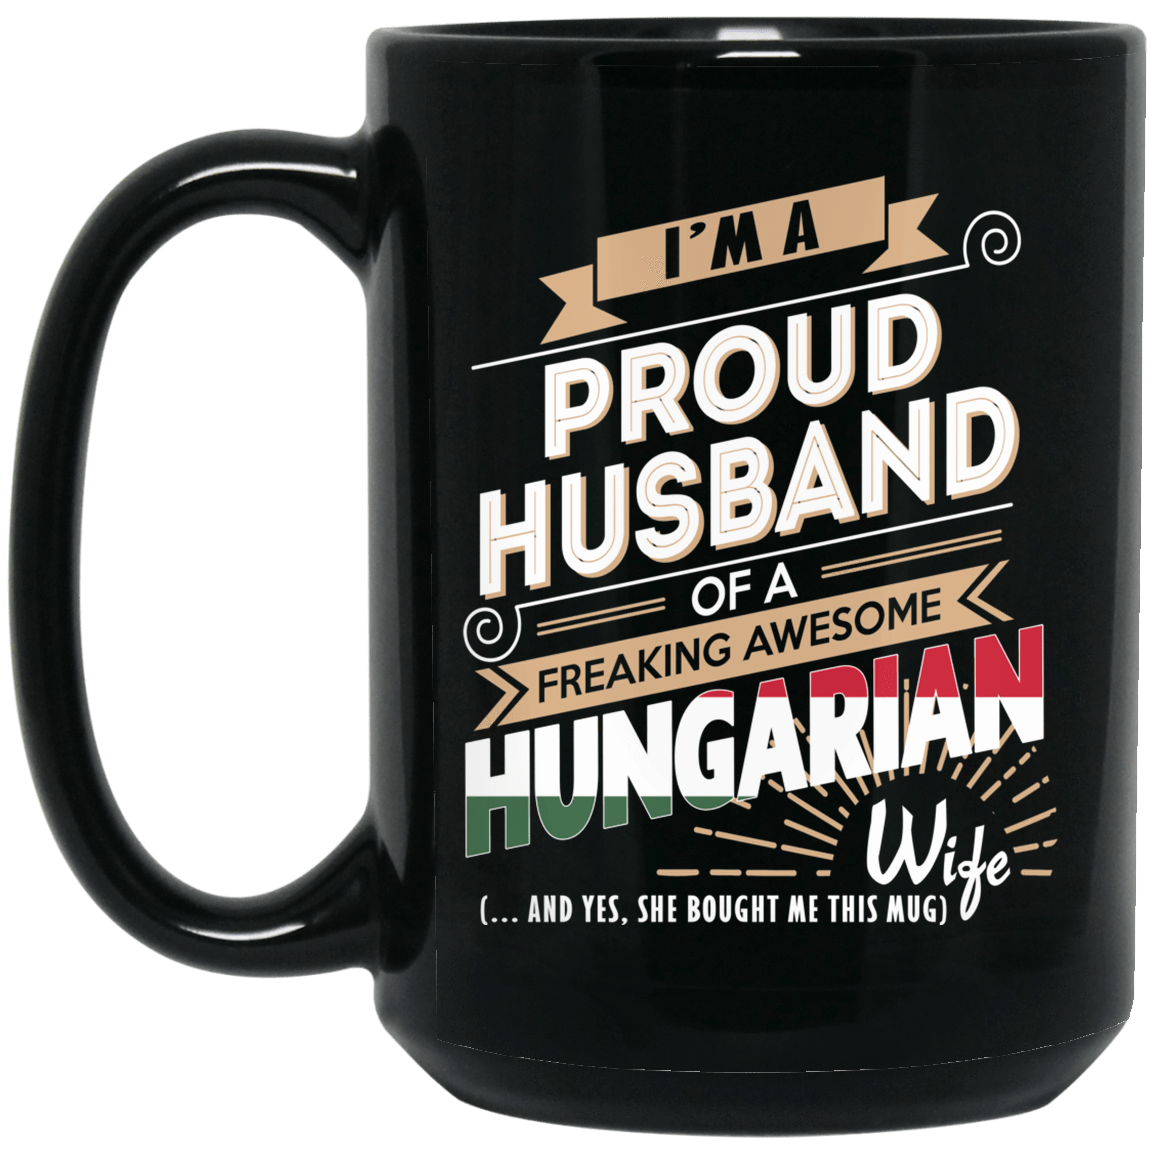 Proud Husband Of A Freaking Awesome Hungarian Wife Mug 1066-10182-72136520-49311 - Tee Ript